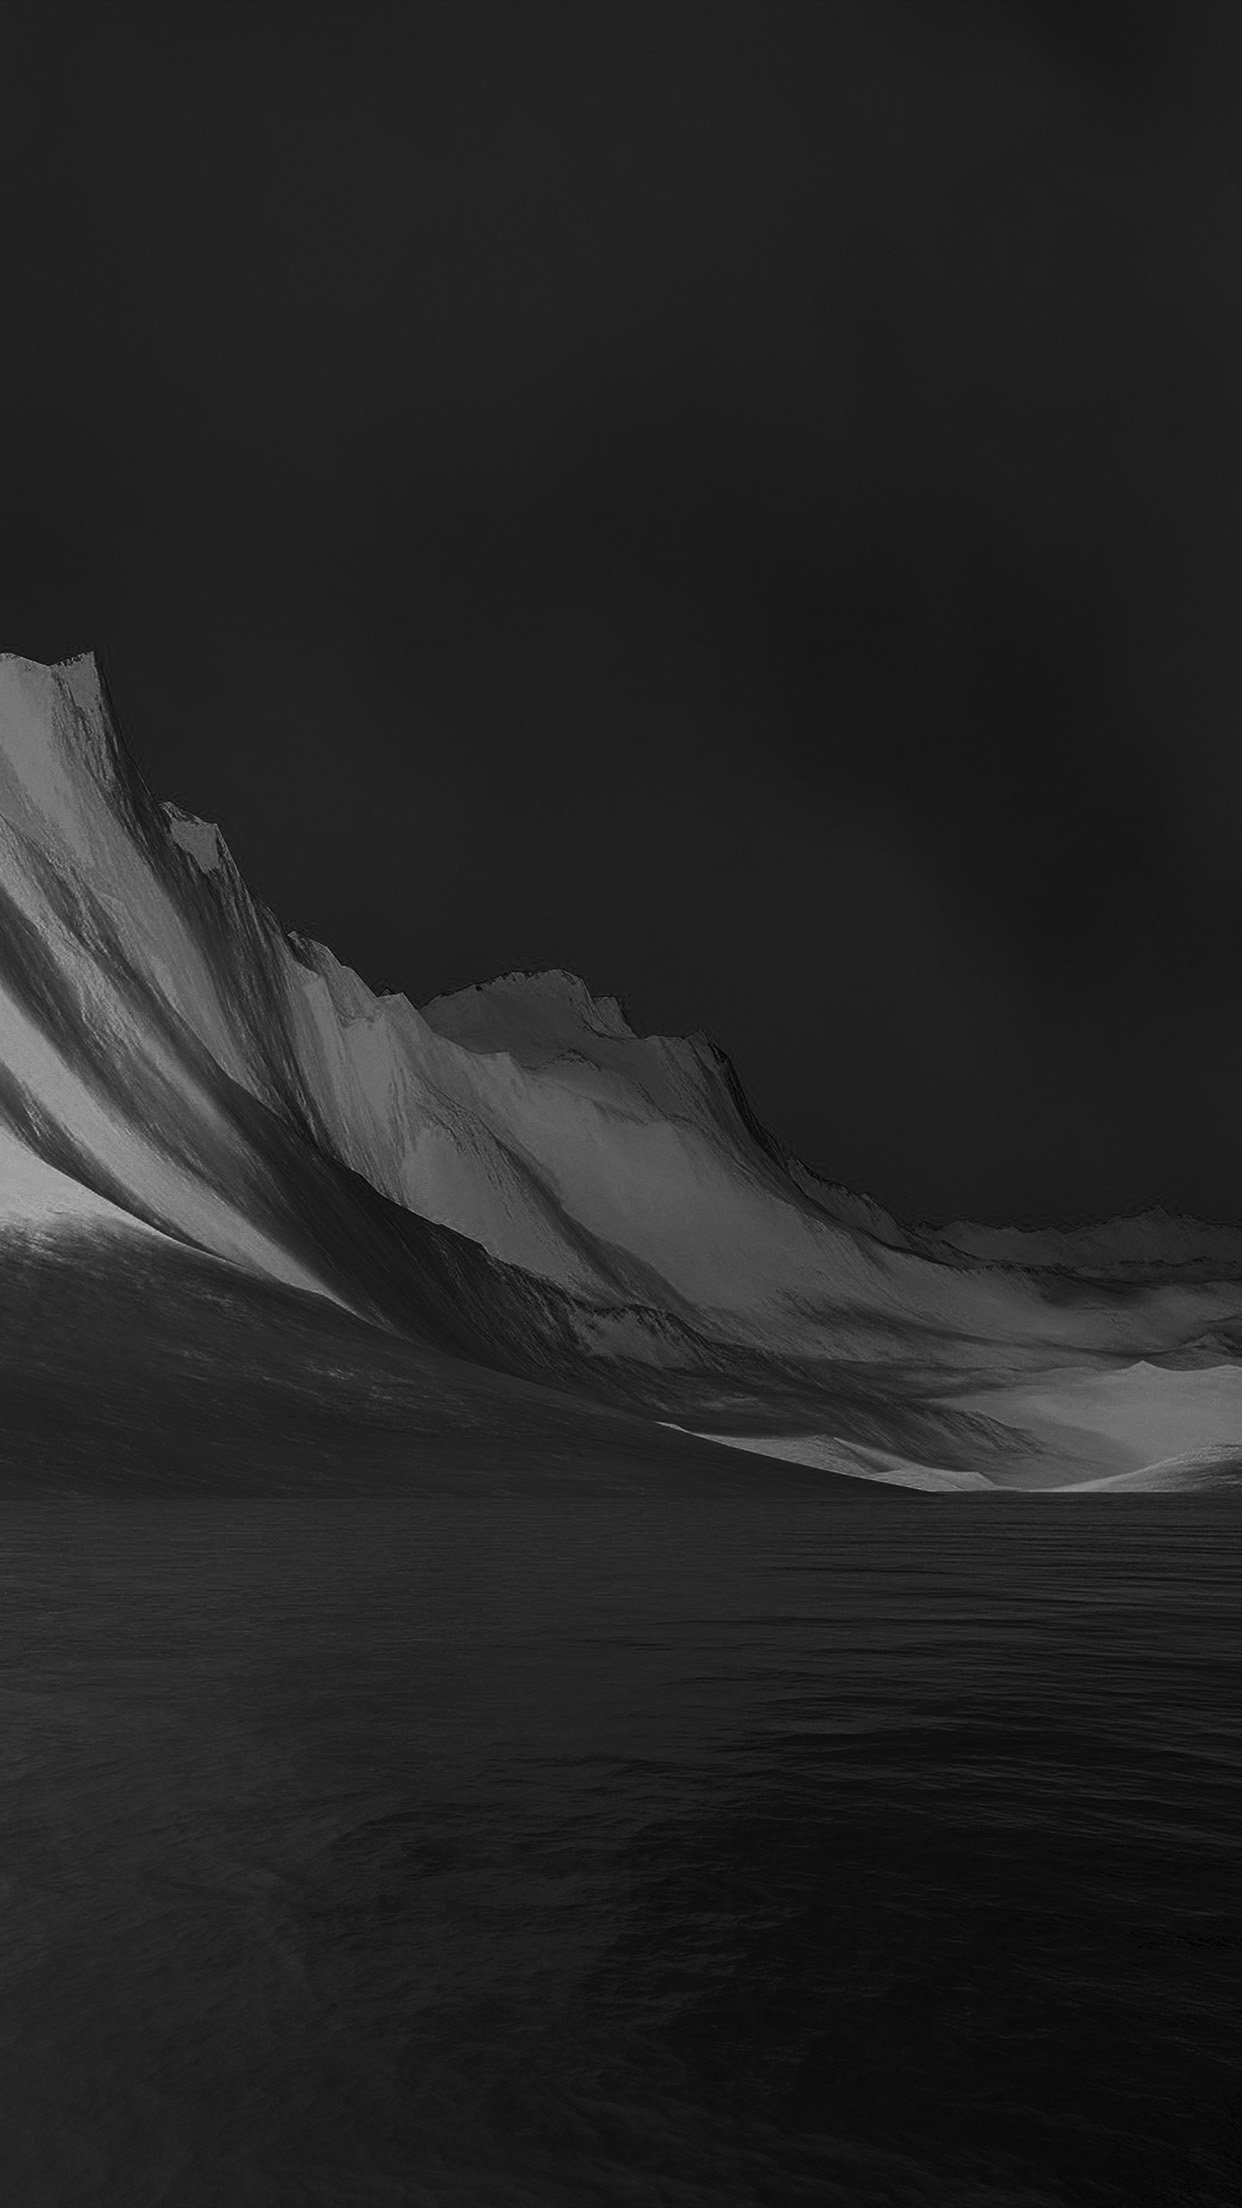 Lg G Flex Art Mountain Digital Bw Dark Black Abstract Android wallpaper